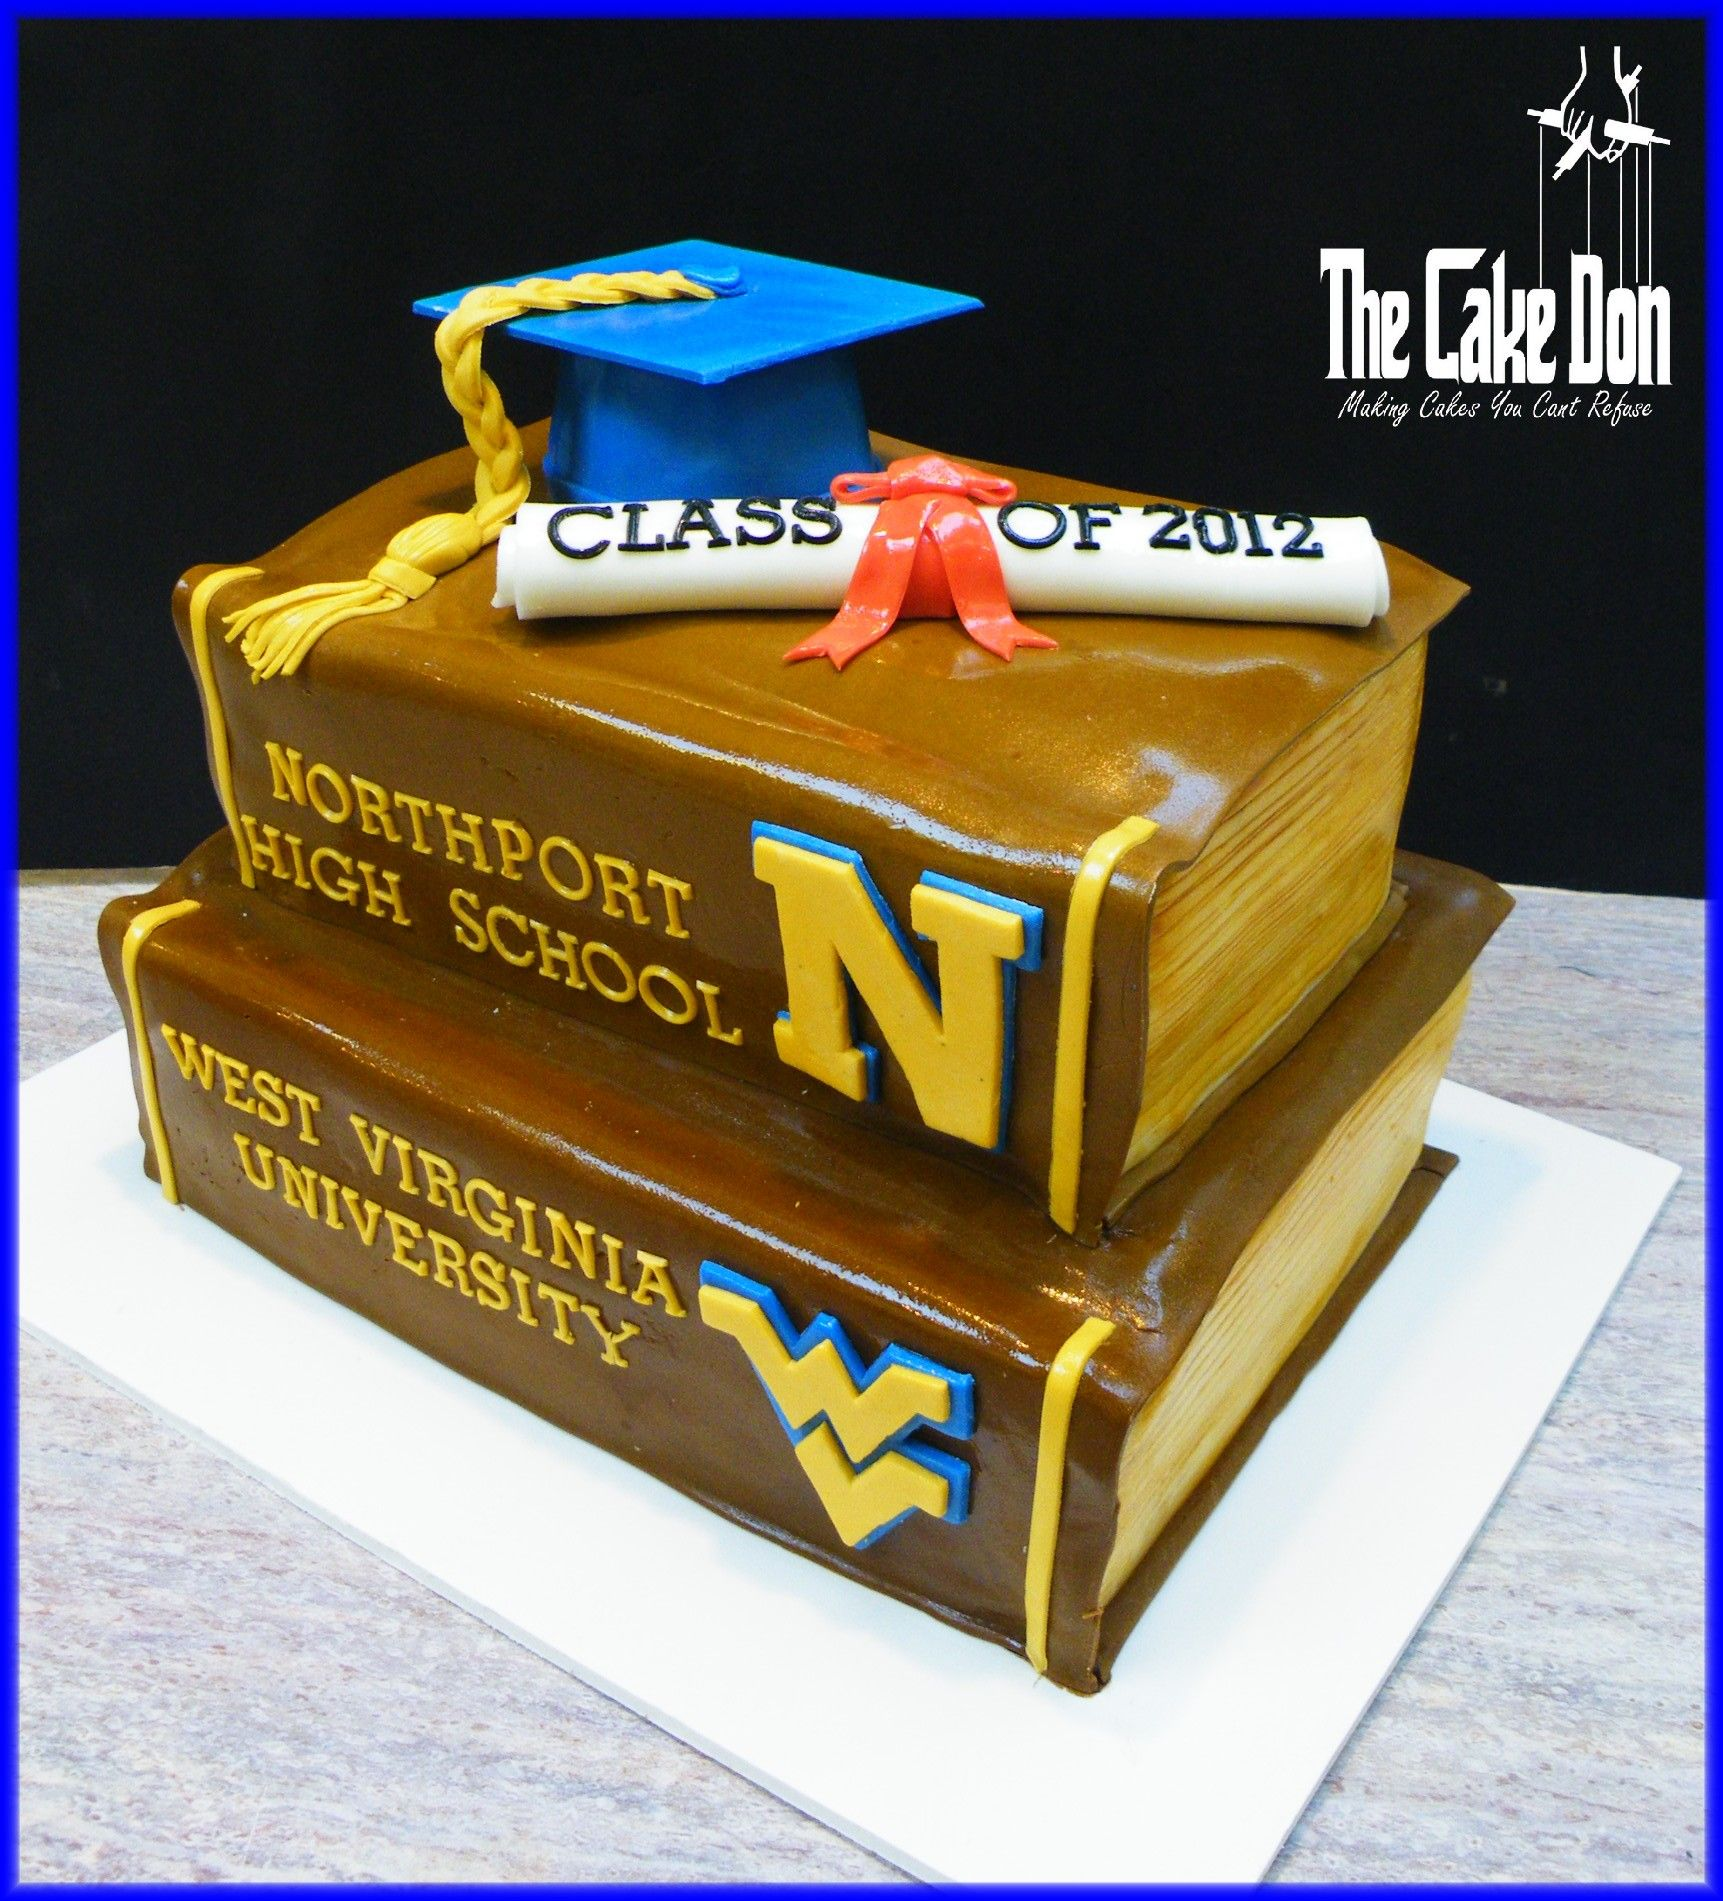 The NORTHPORT CLASS OF 2012